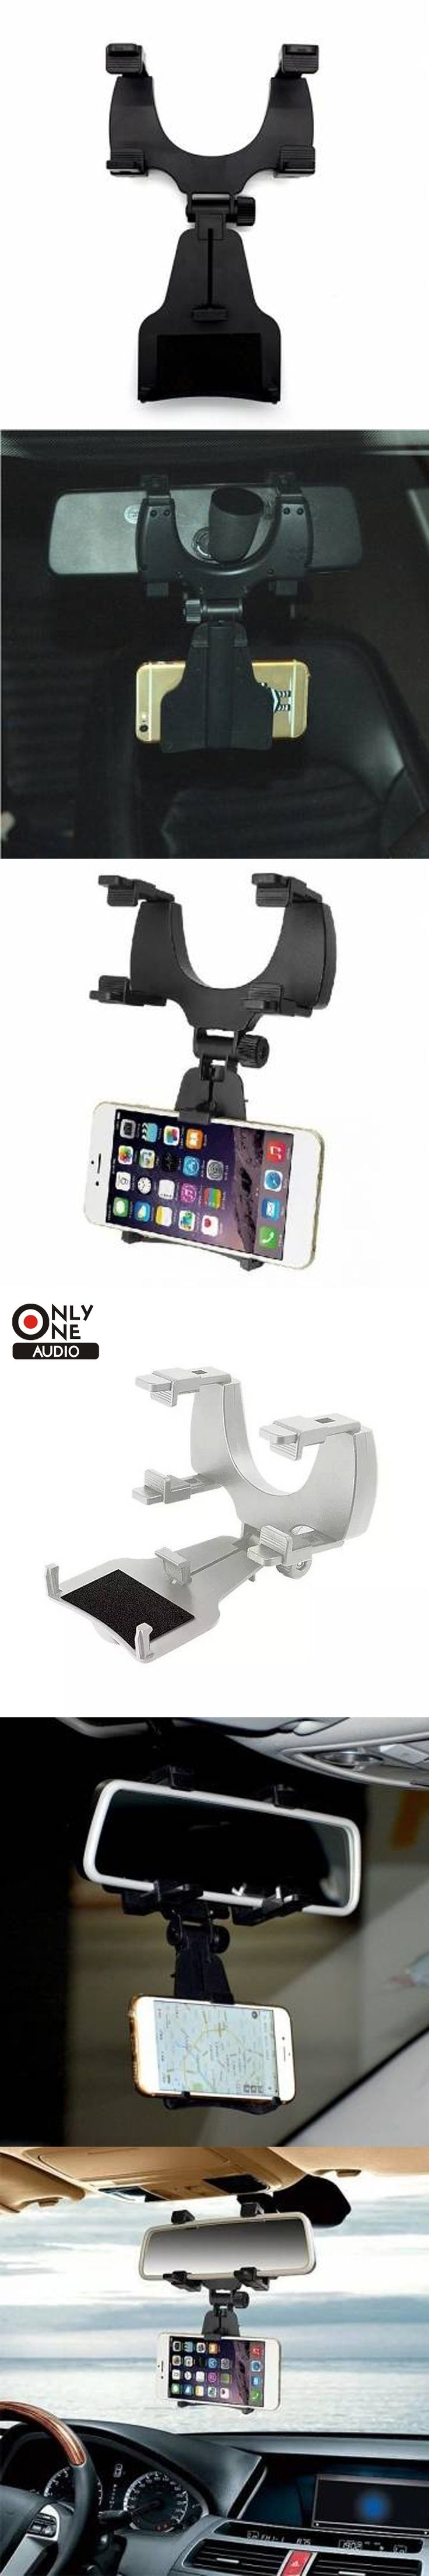 Only one audio Universal Car Rear View Mirror Bracket Mount Holder for 4-6.3 inch Smartphone